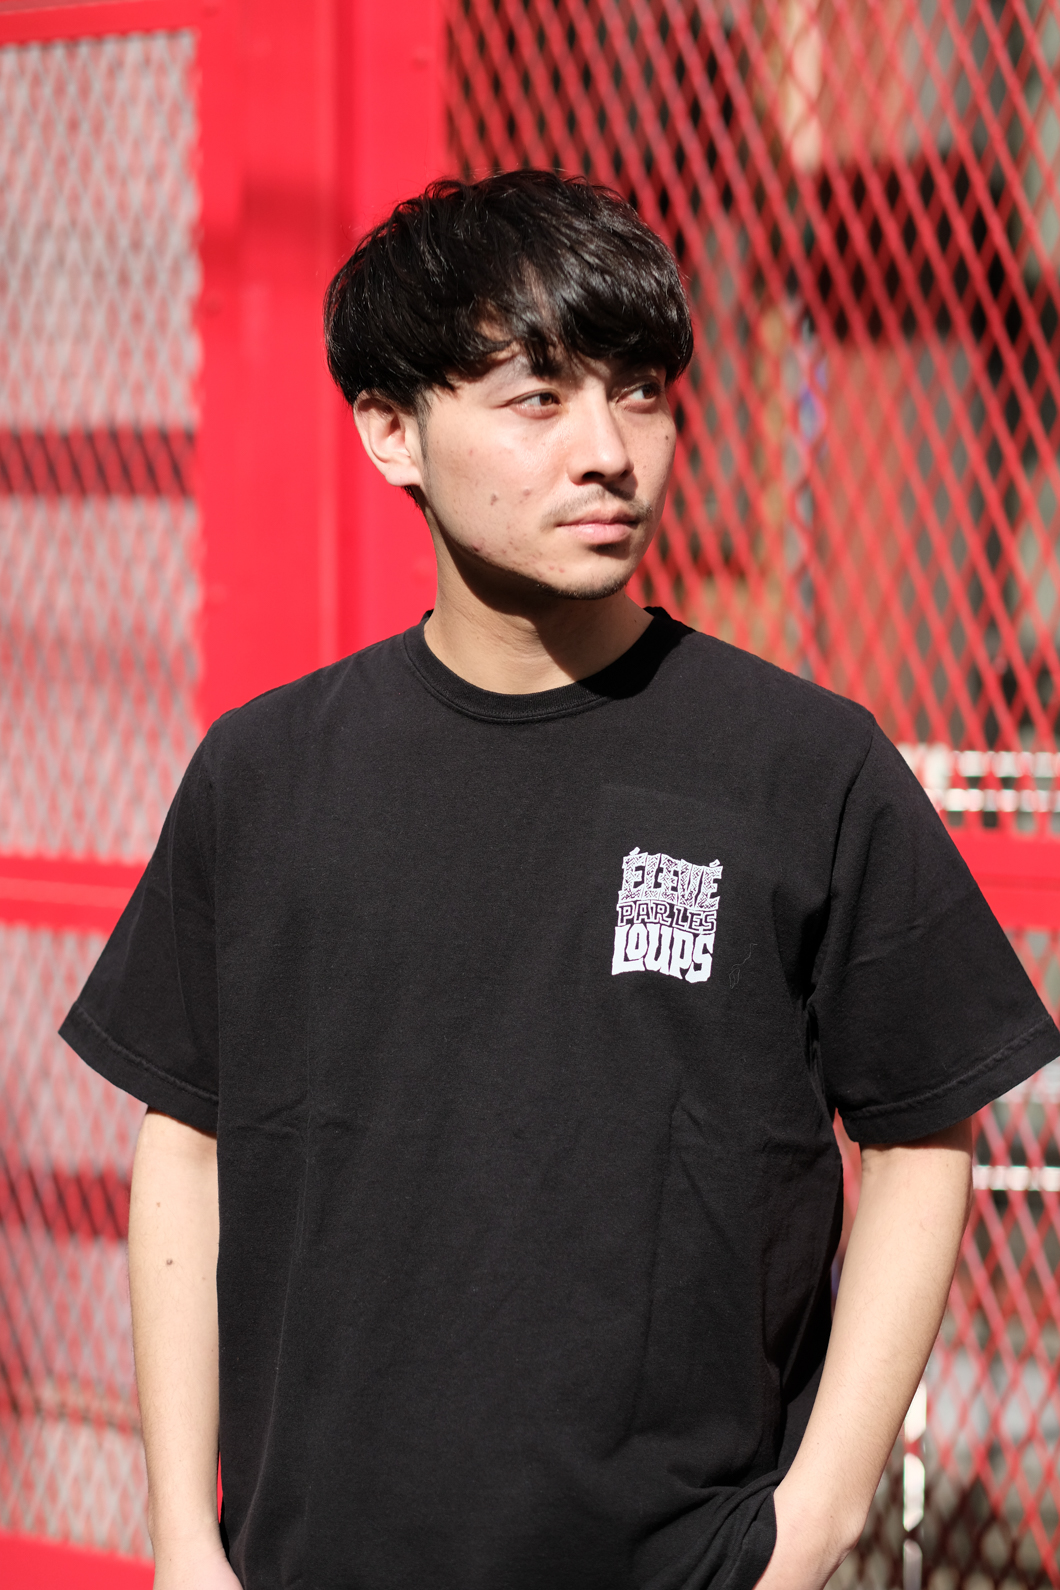 【RAISED BY WOLVES/レイズドバイウルブス】ELEVE PAR LES LOUPS TEE Tシャツ / BLACK